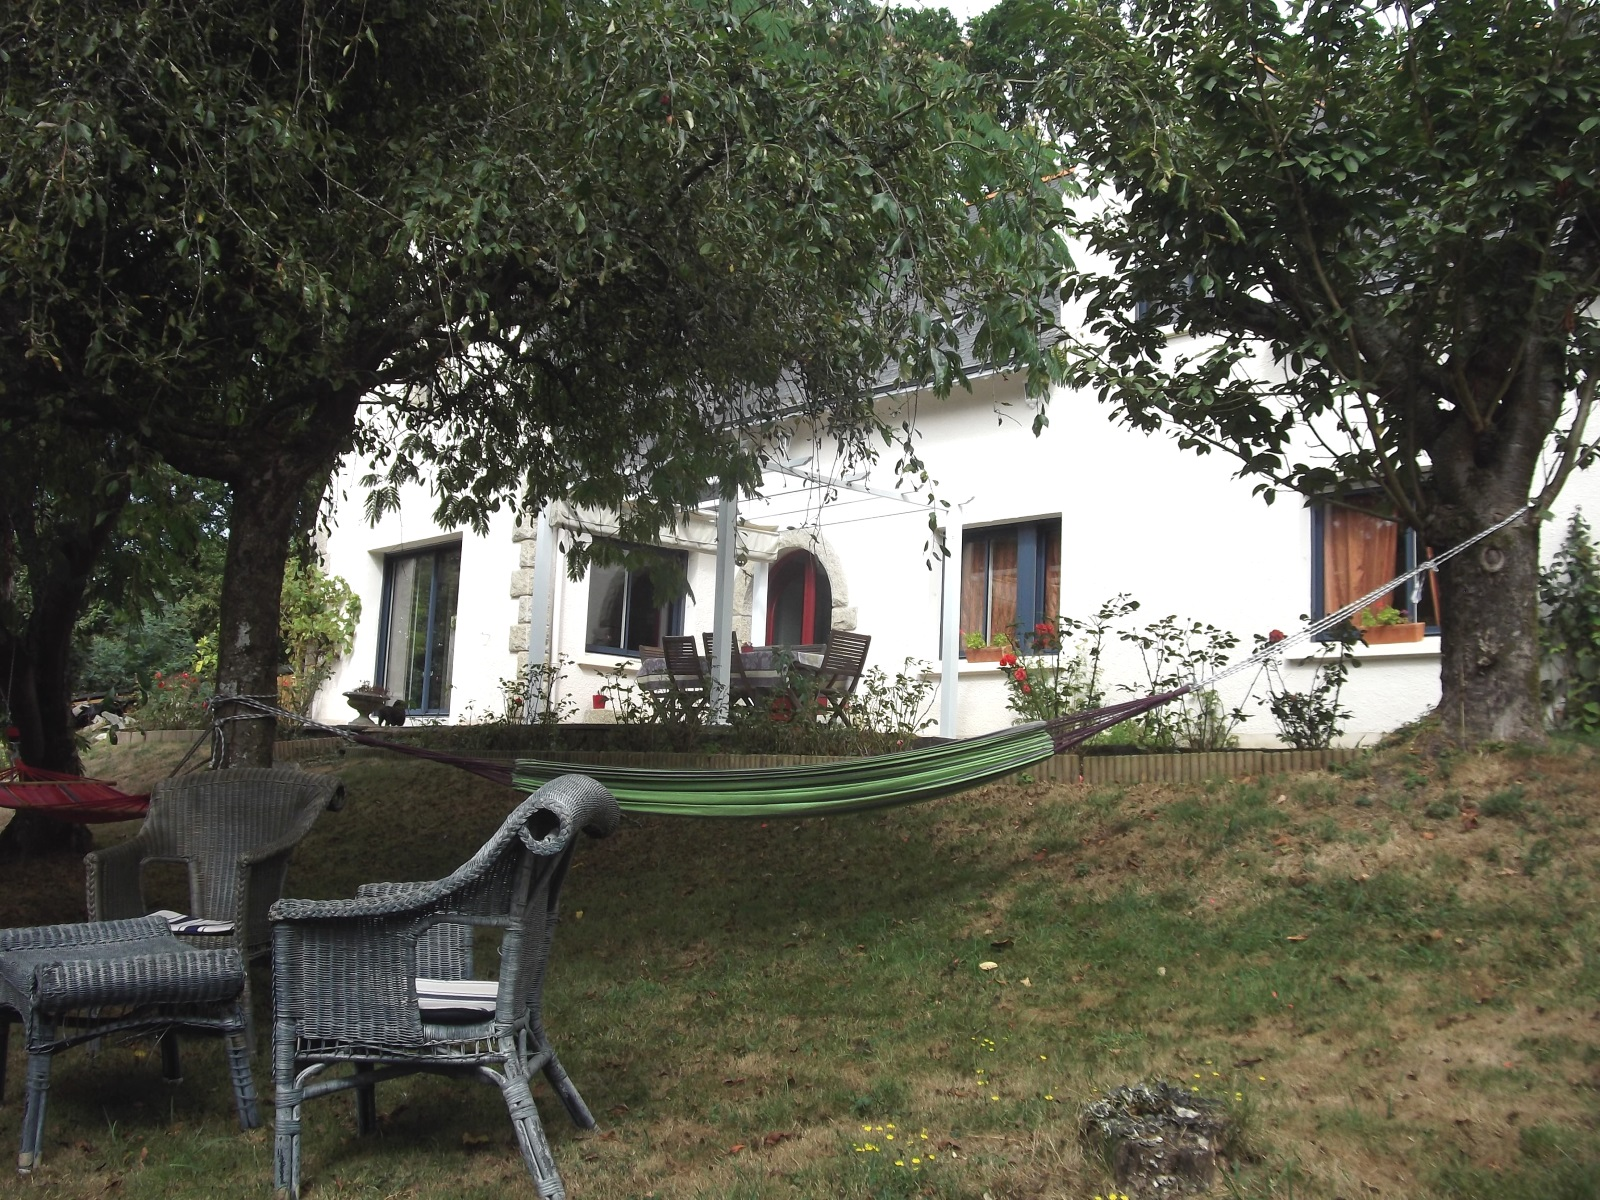 ty-canal-dor-maison-hotes-44-entree